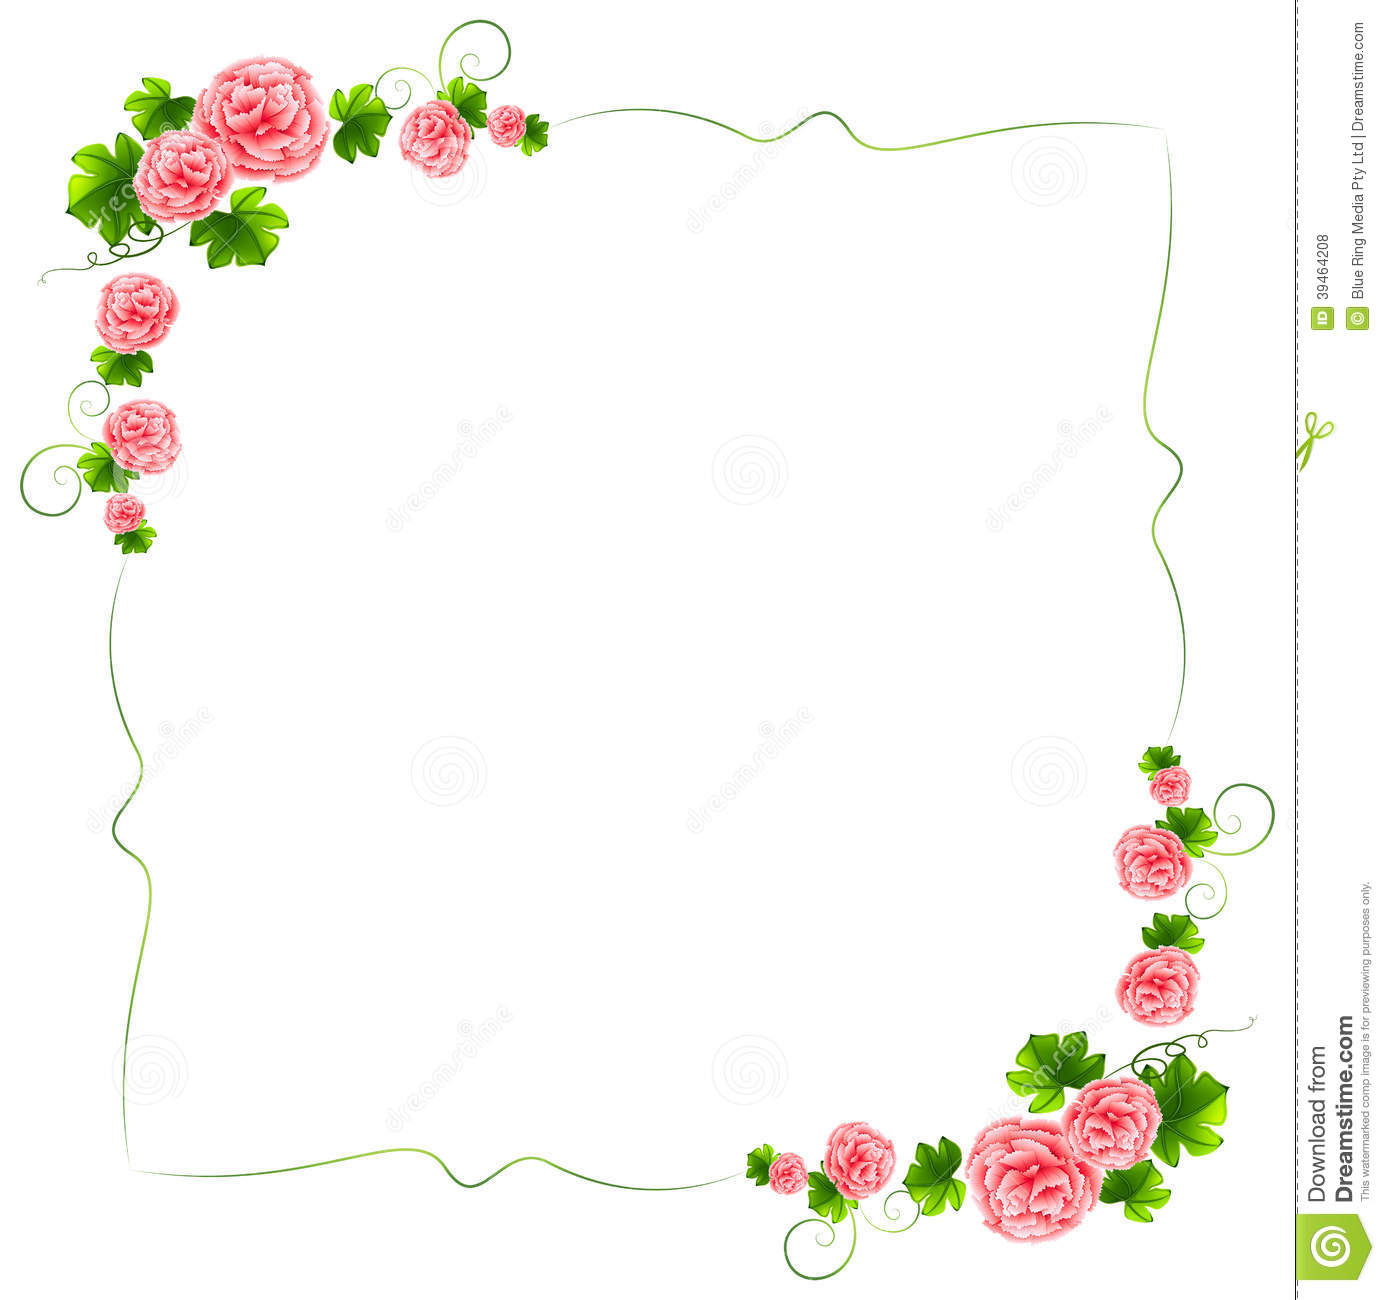 A border with carnation pink flowers stock vector illustration of a border with carnation pink flowers mightylinksfo